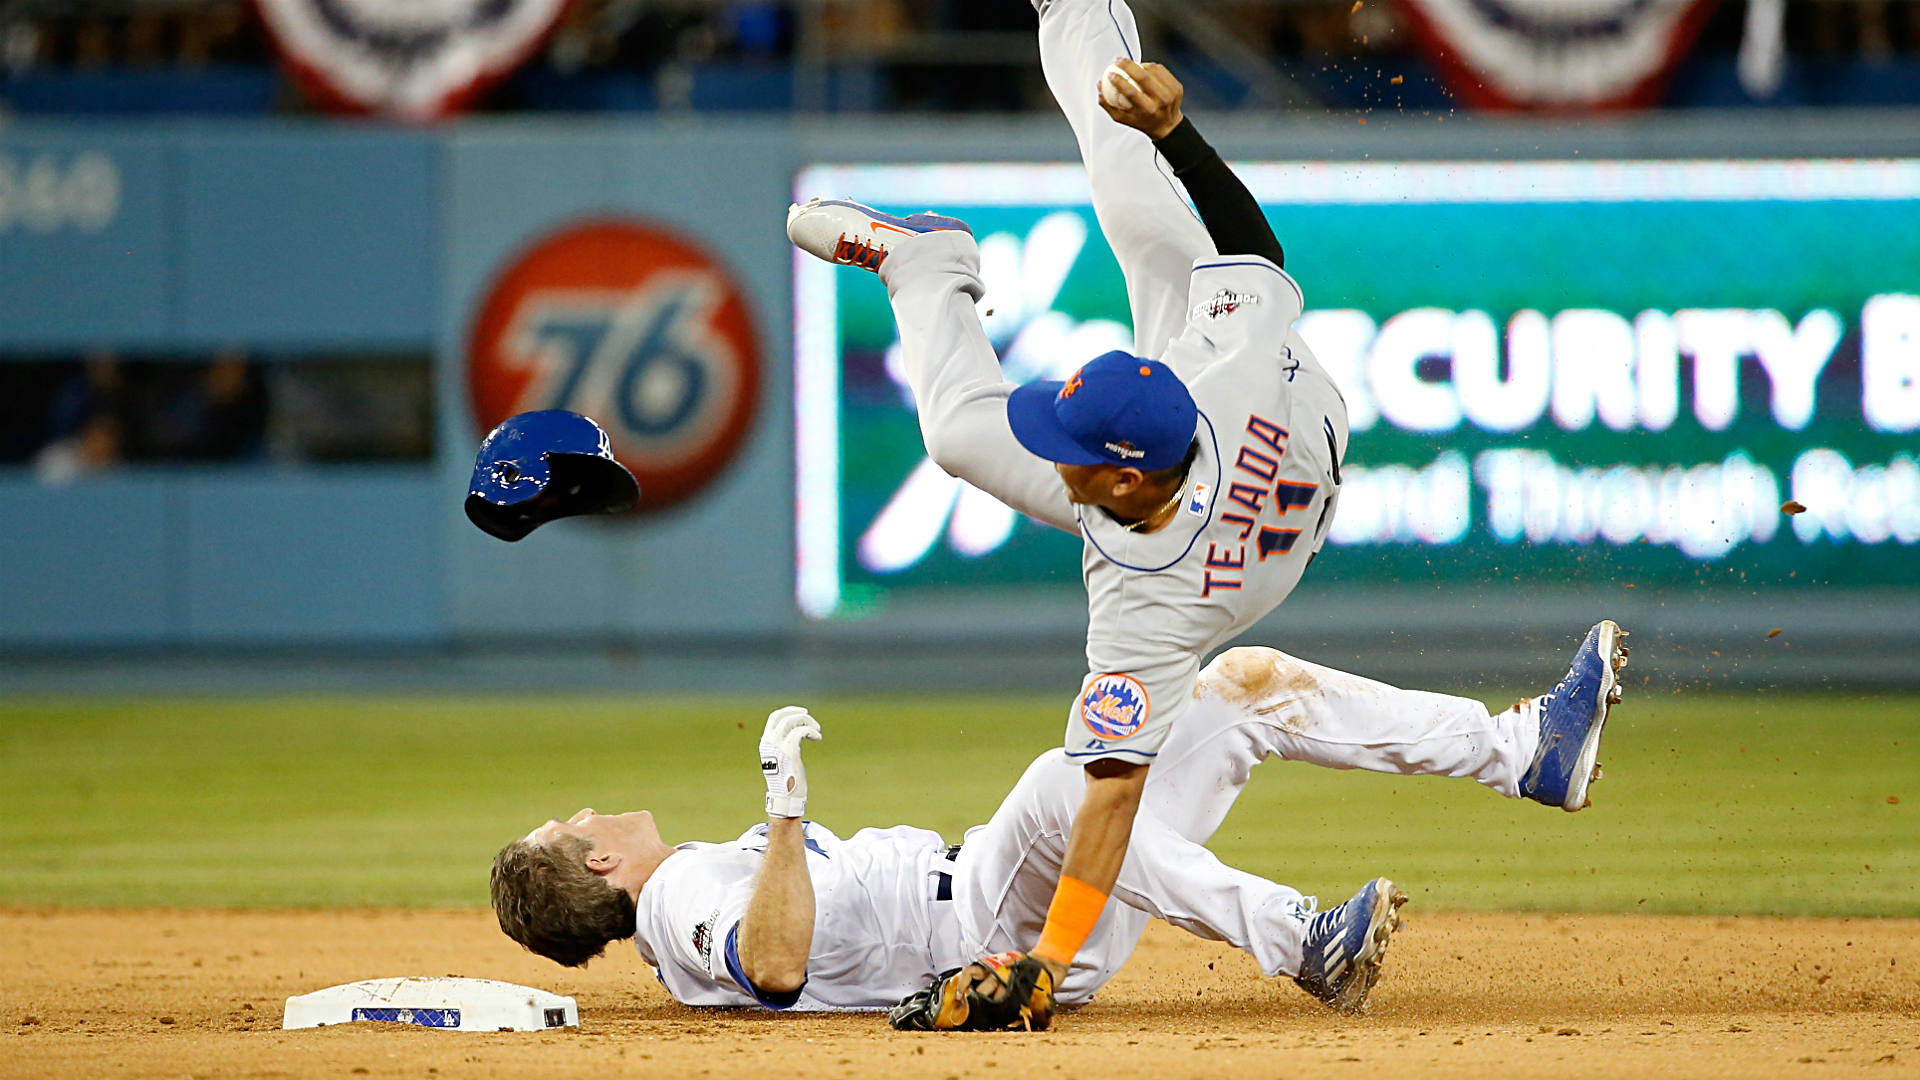 ChaseUtleySlide-Getty-FTR-101015.jpg